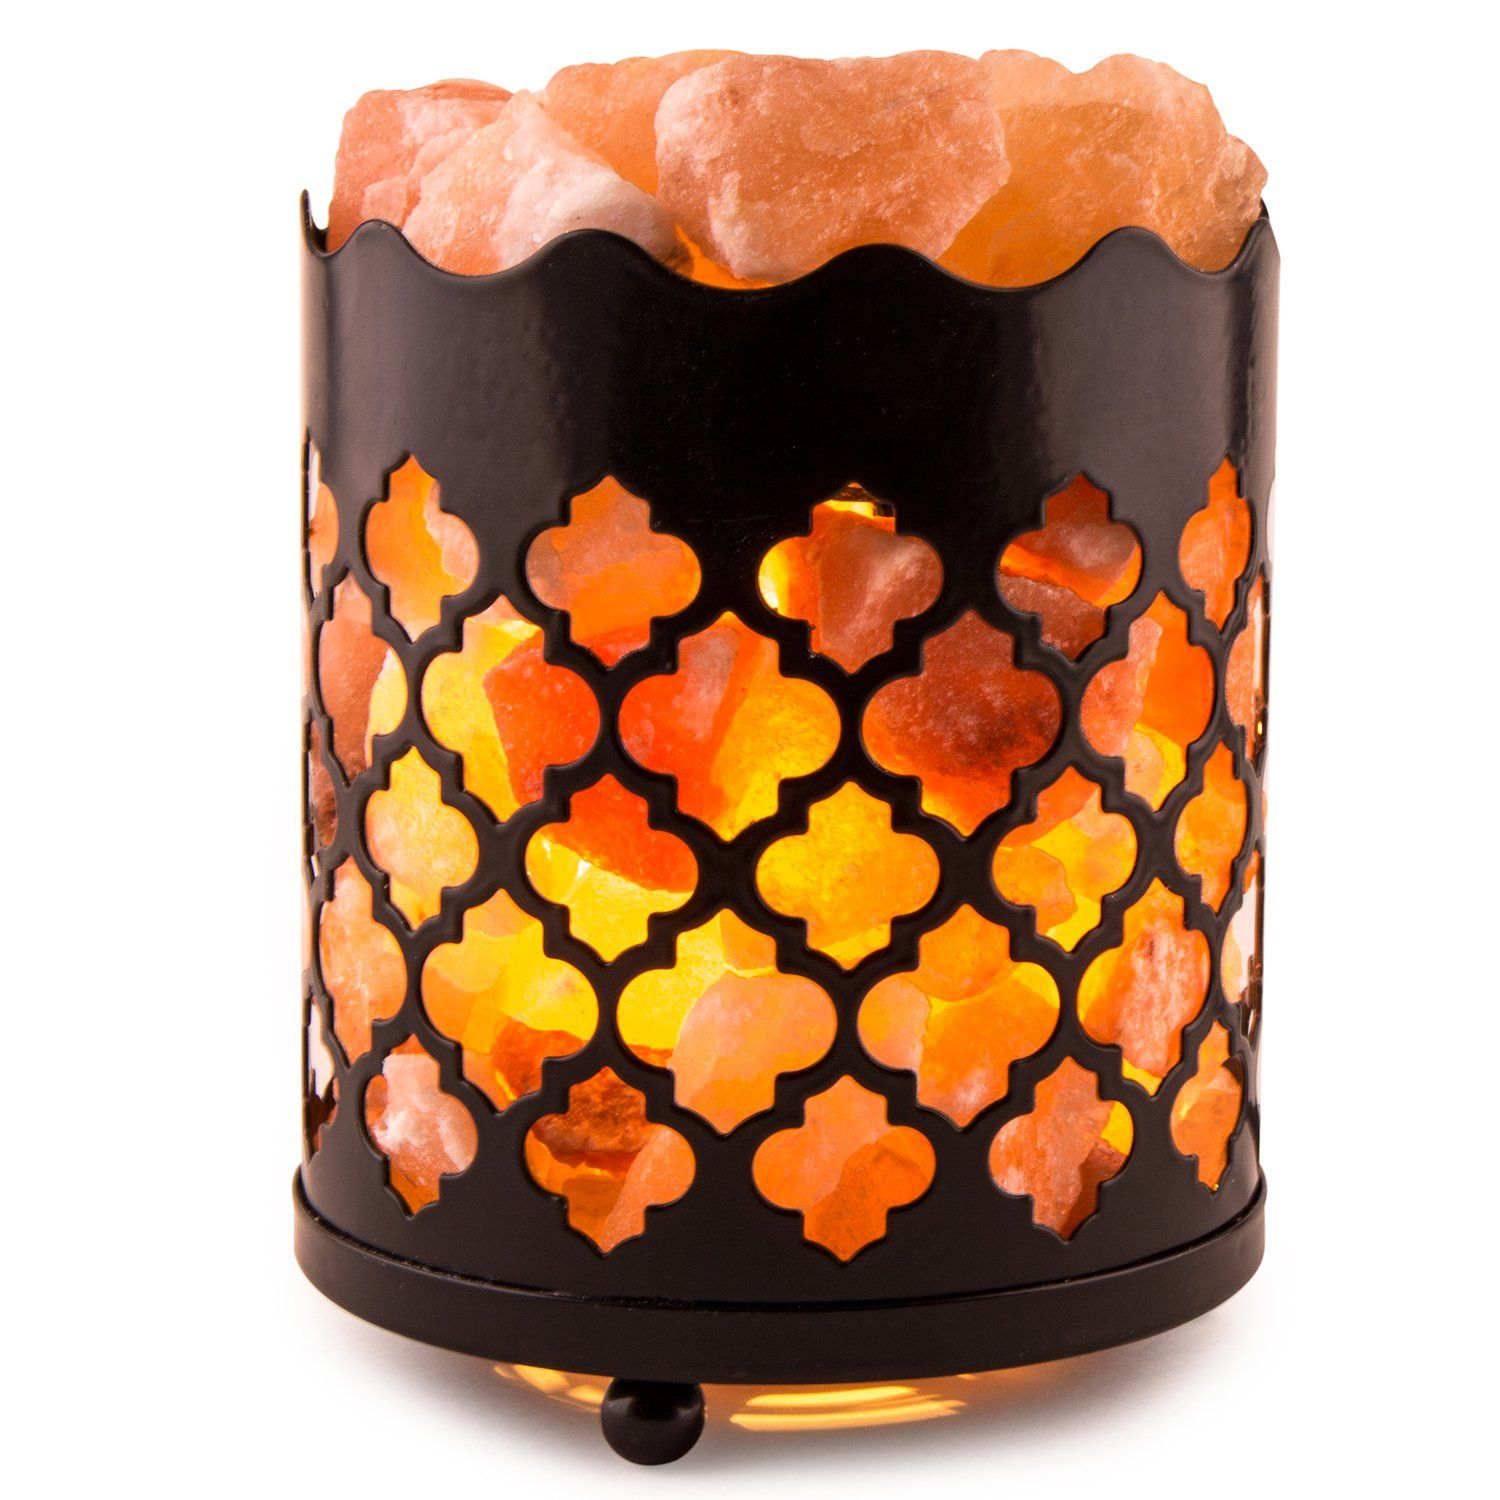 Lumiere Salt Lamp Brilliant Crystal Decor Natural Himalayan Salt Lamp With Salt Chunks In Decorating Inspiration